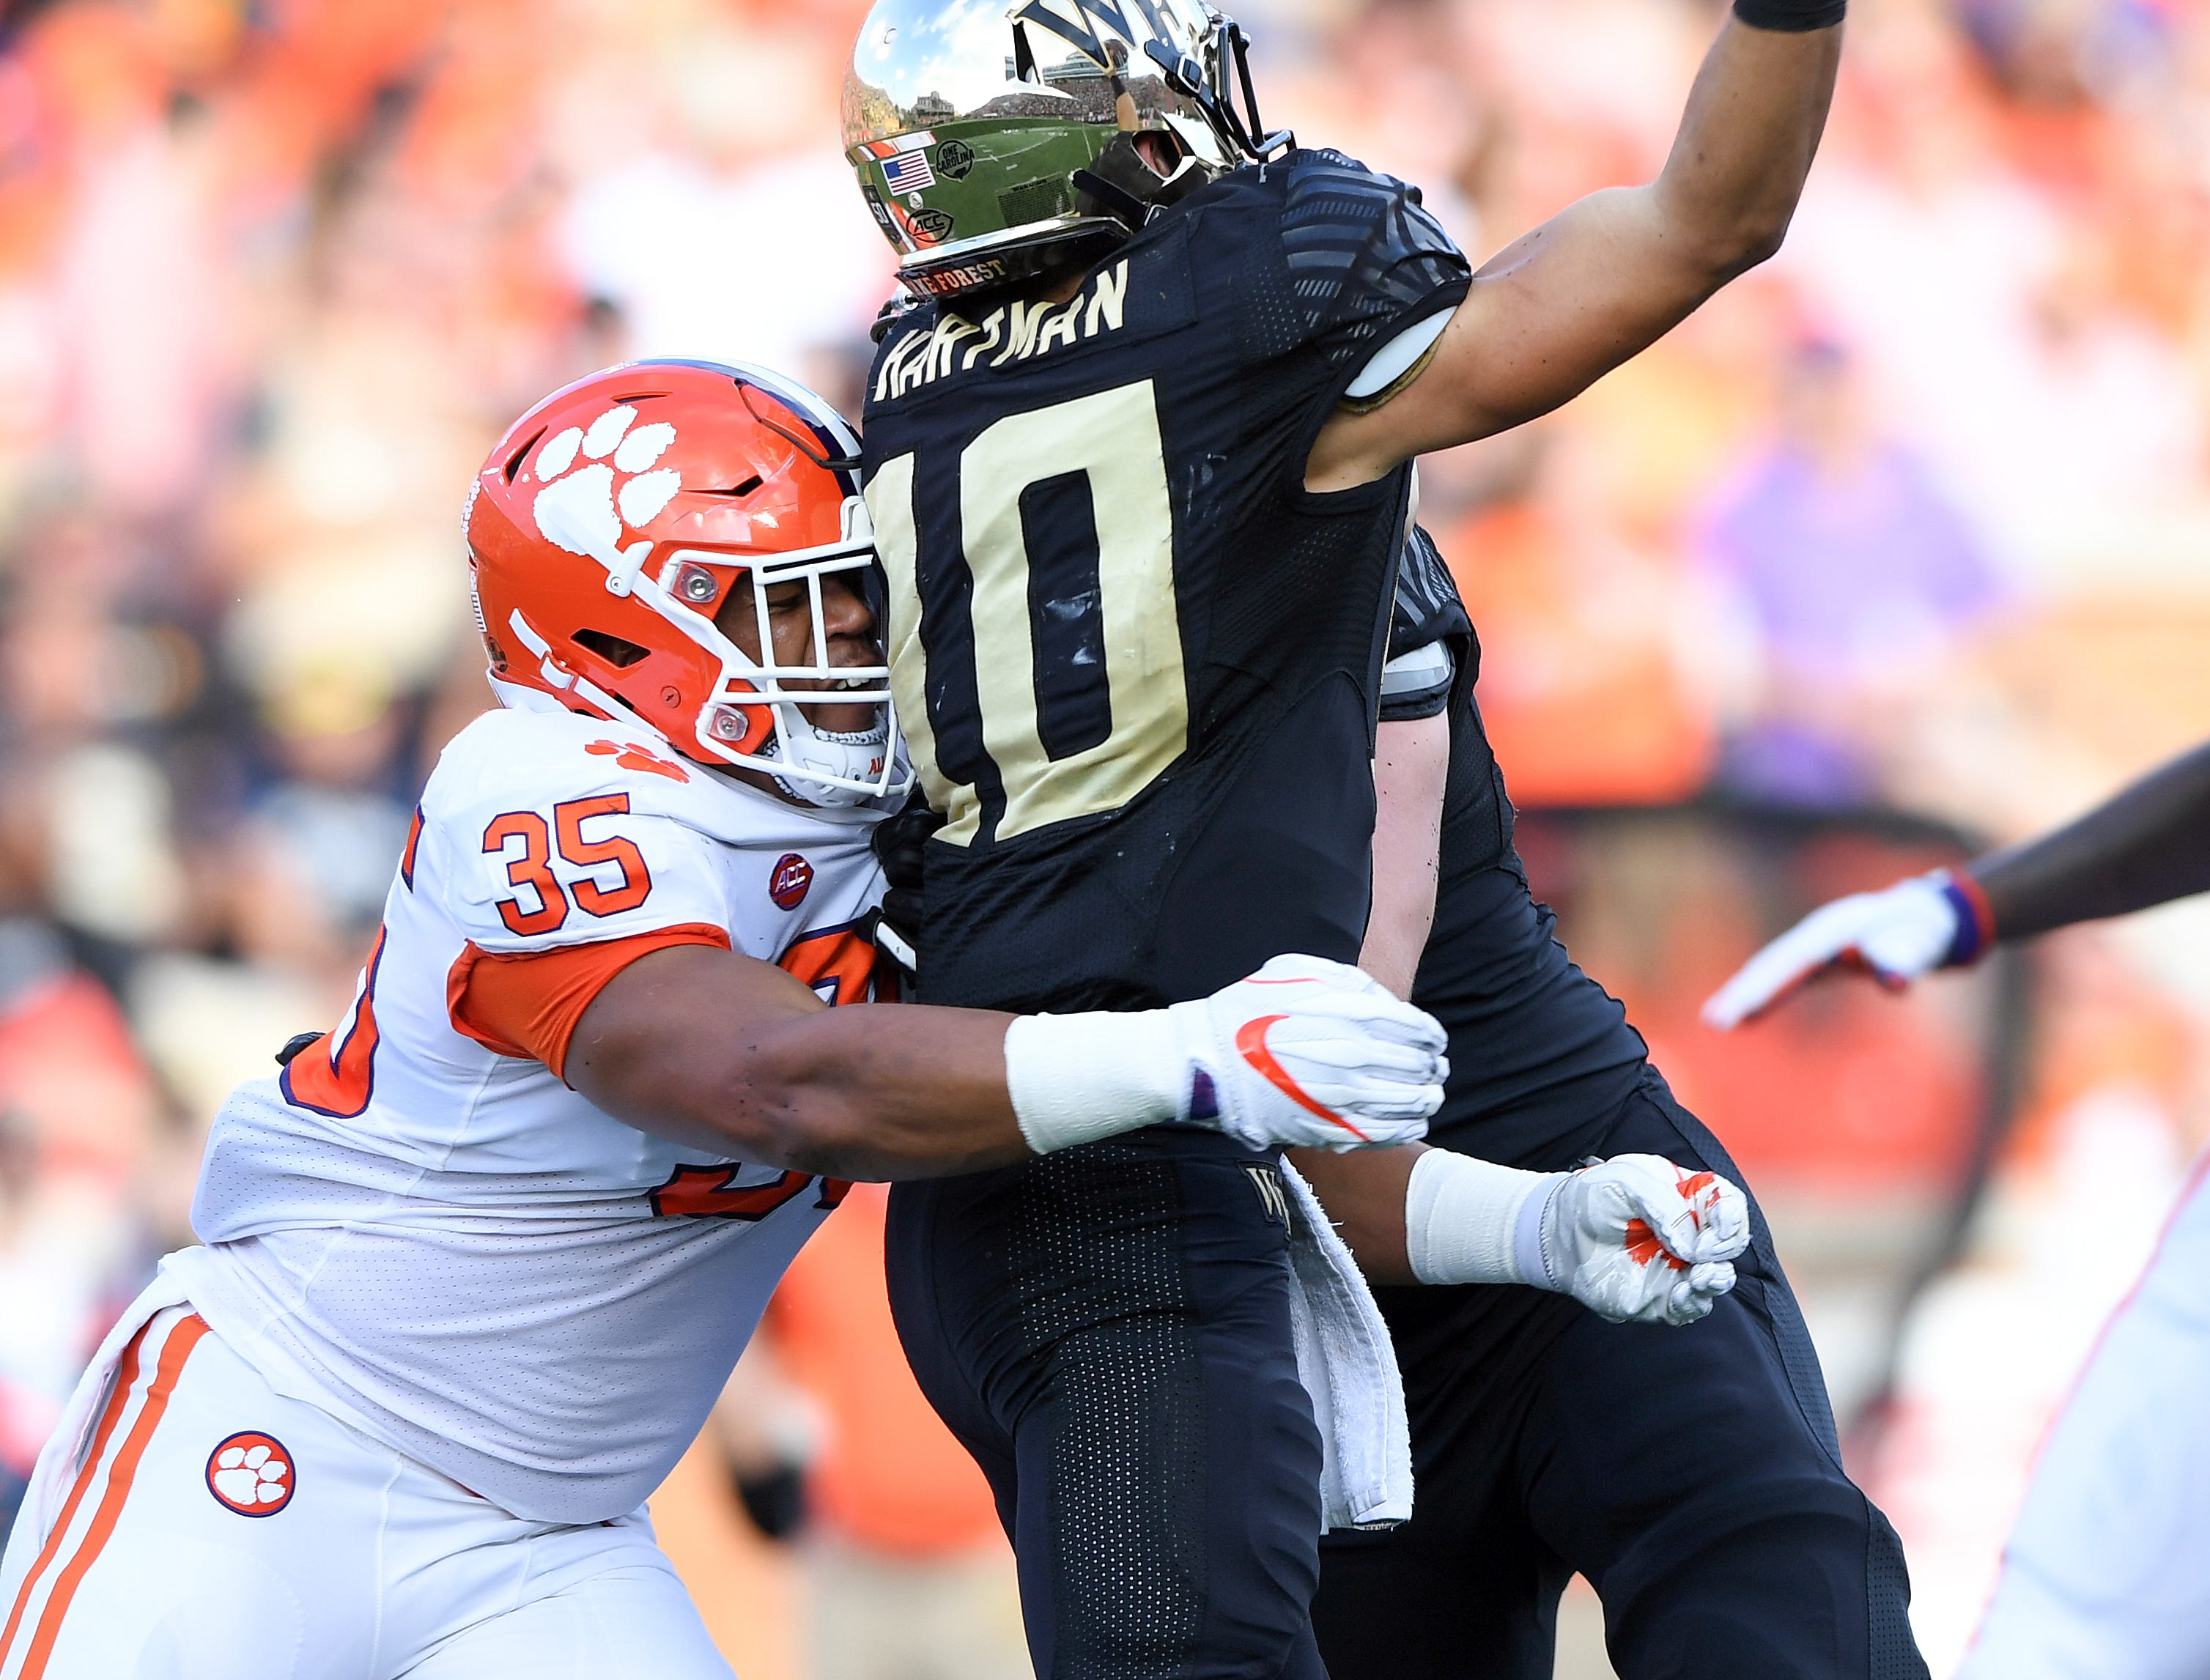 Clemson linebacker Justin Foster (35) pressures Wake Forest quarterback Sam Hartman (10) during the 2nd quarter at BB&T Field in Winston Salem, N.C. Saturday, October 6, 2018.